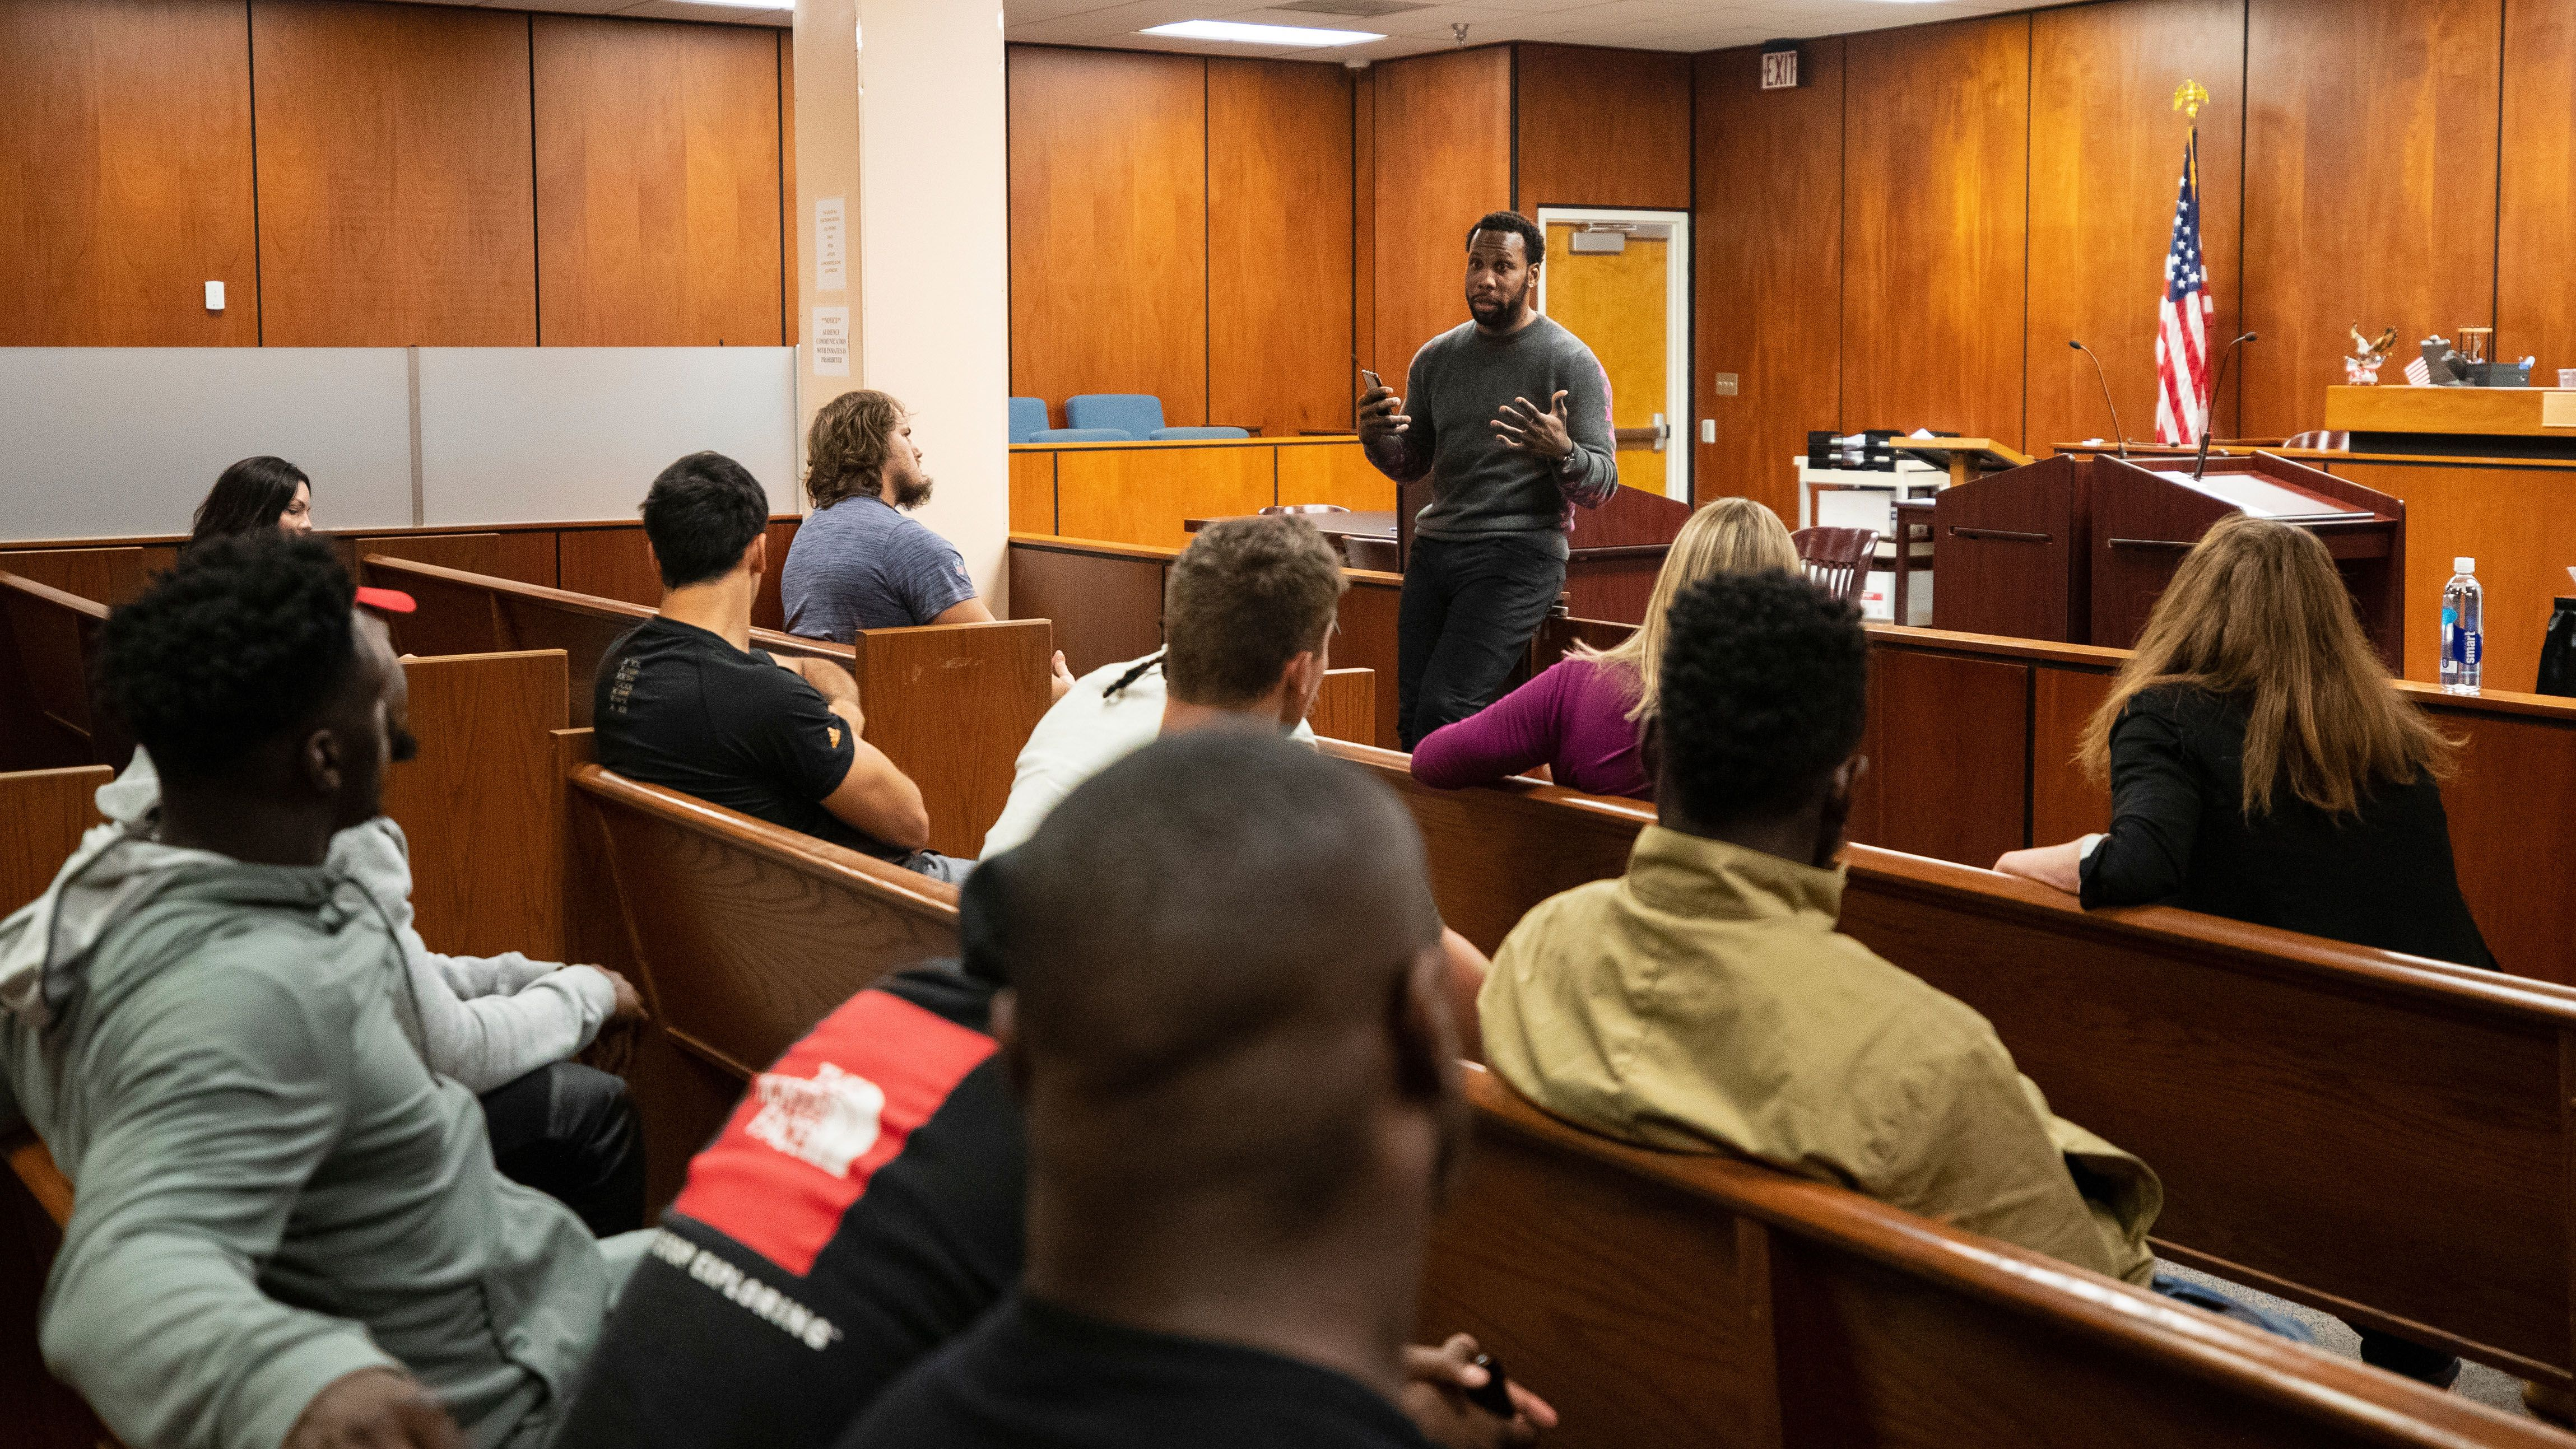 Their Day in Court: Bucs Players Get Firsthand Look into Local Judicial System